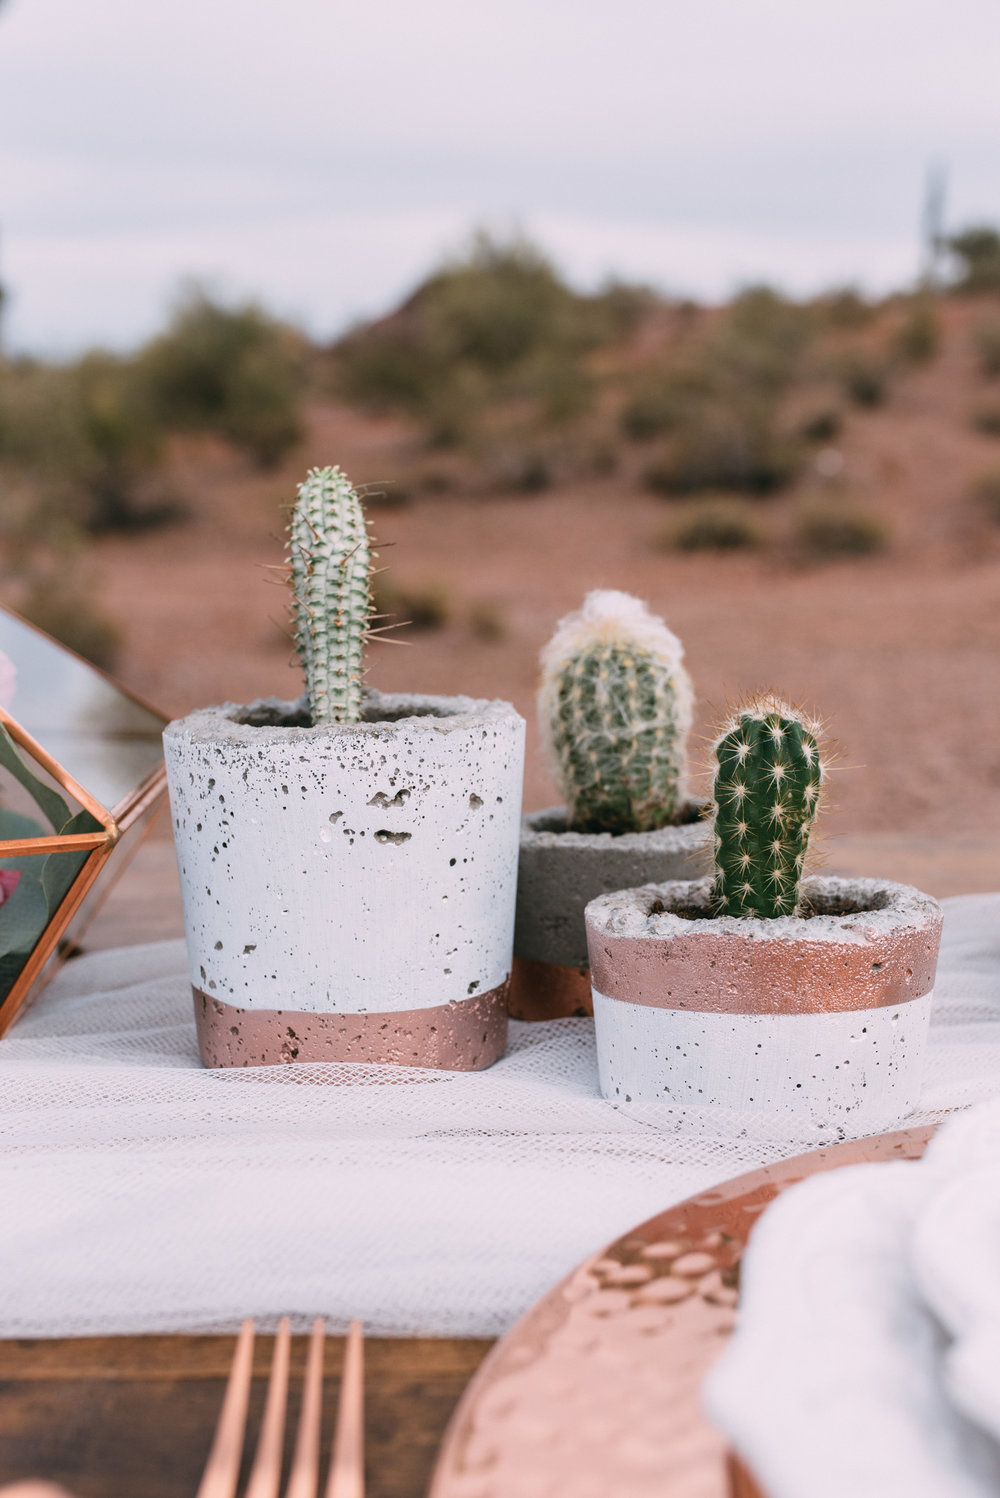 Copper and concrete potted cactus on table